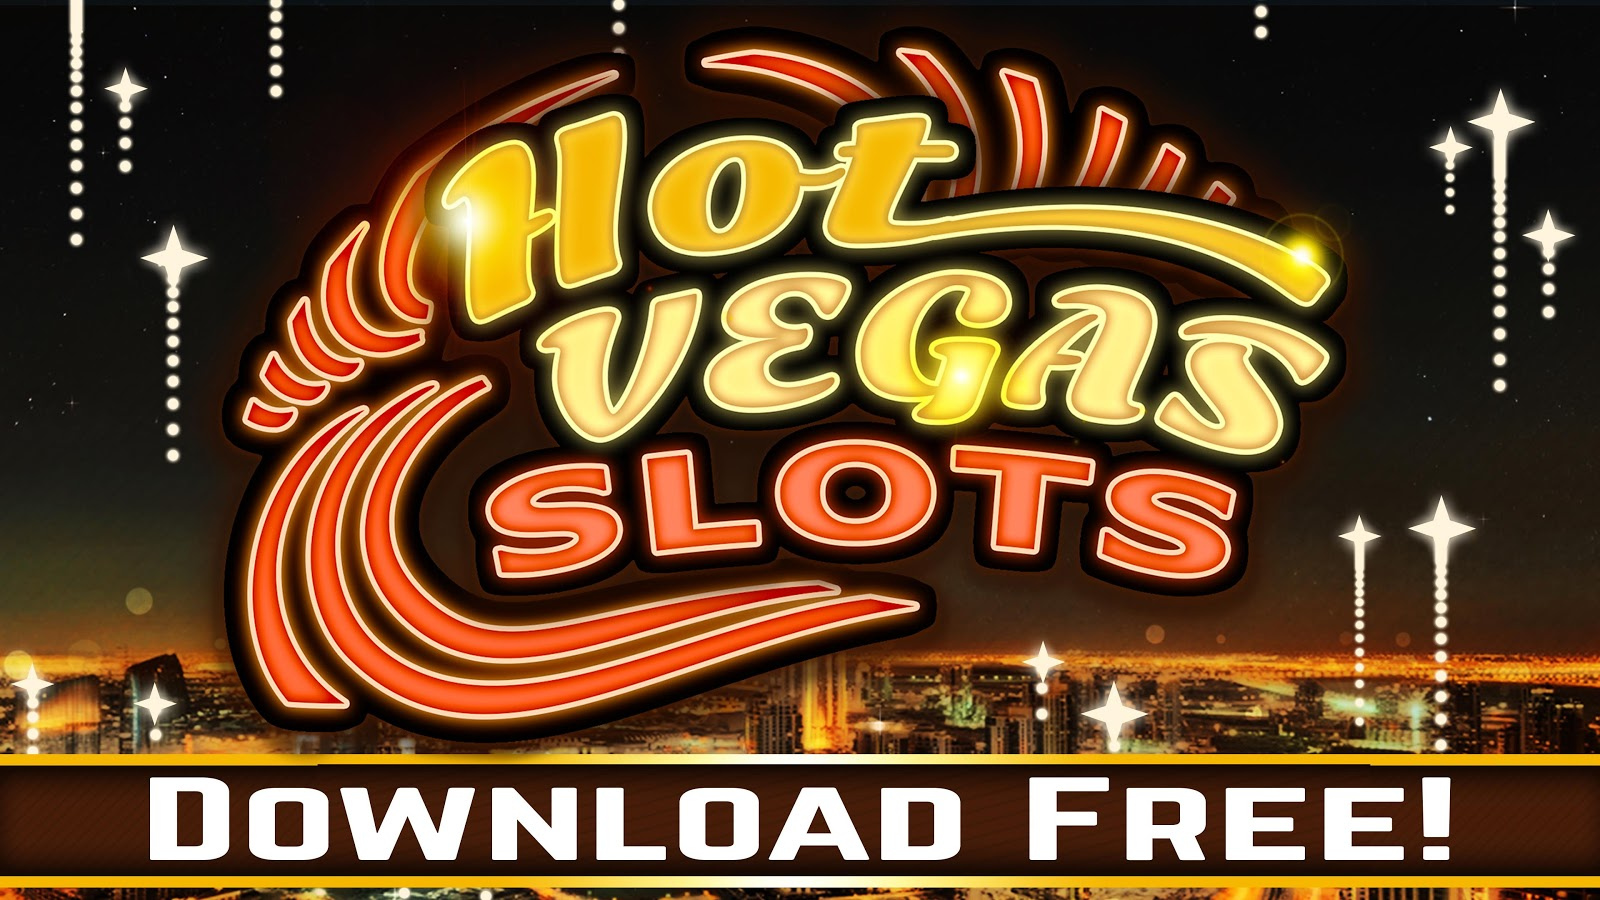 3 Hit Pay Slots - Try this Online Game for Free Now